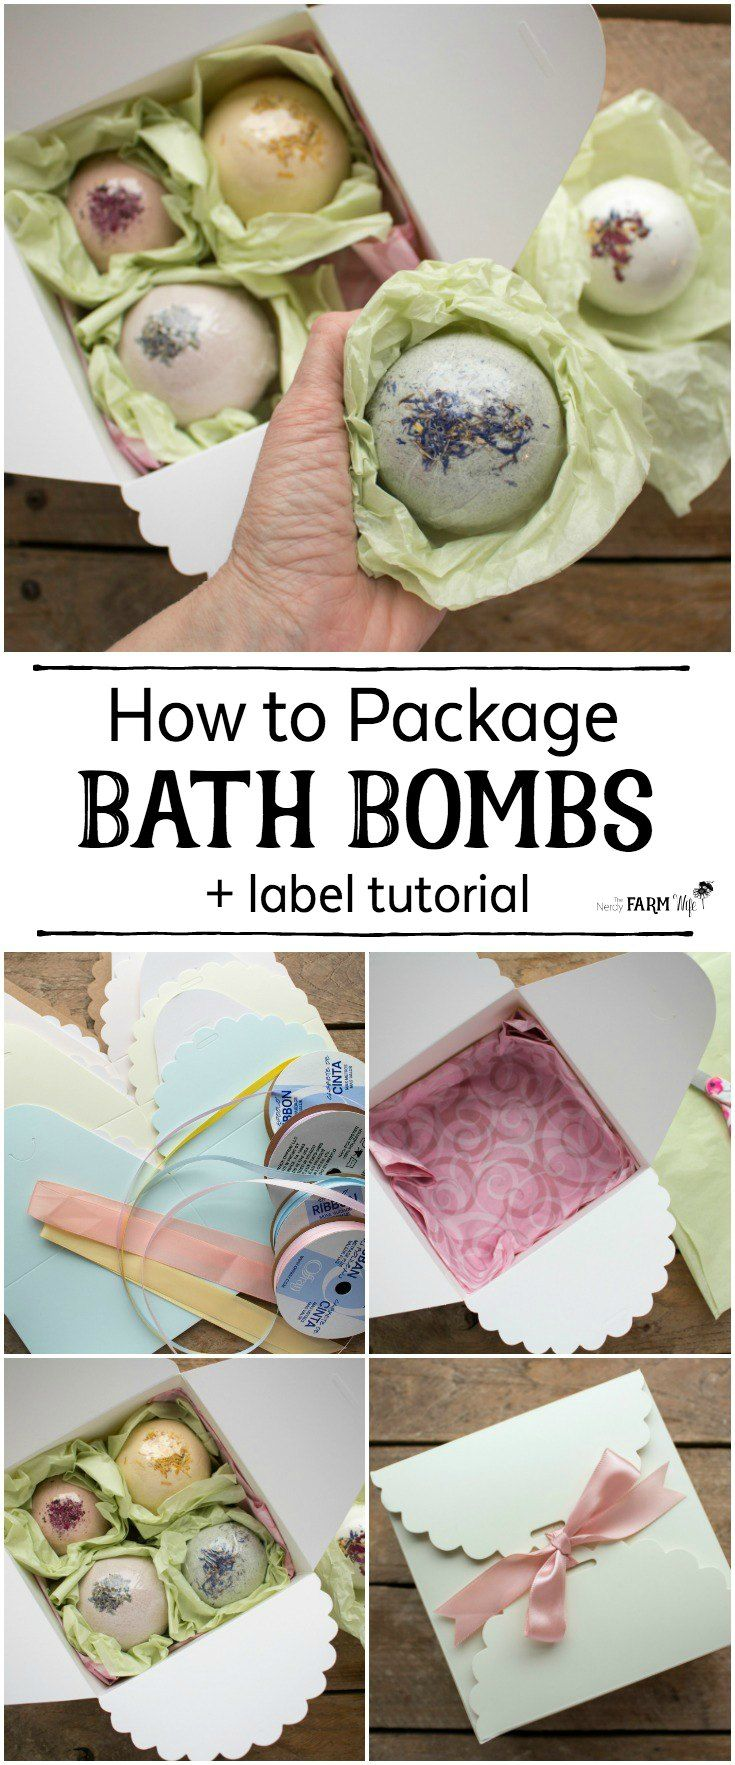 Learn how to package bath bombs for gift giving; also includes a helpful video tutorial on creating your own bath bomb labels!